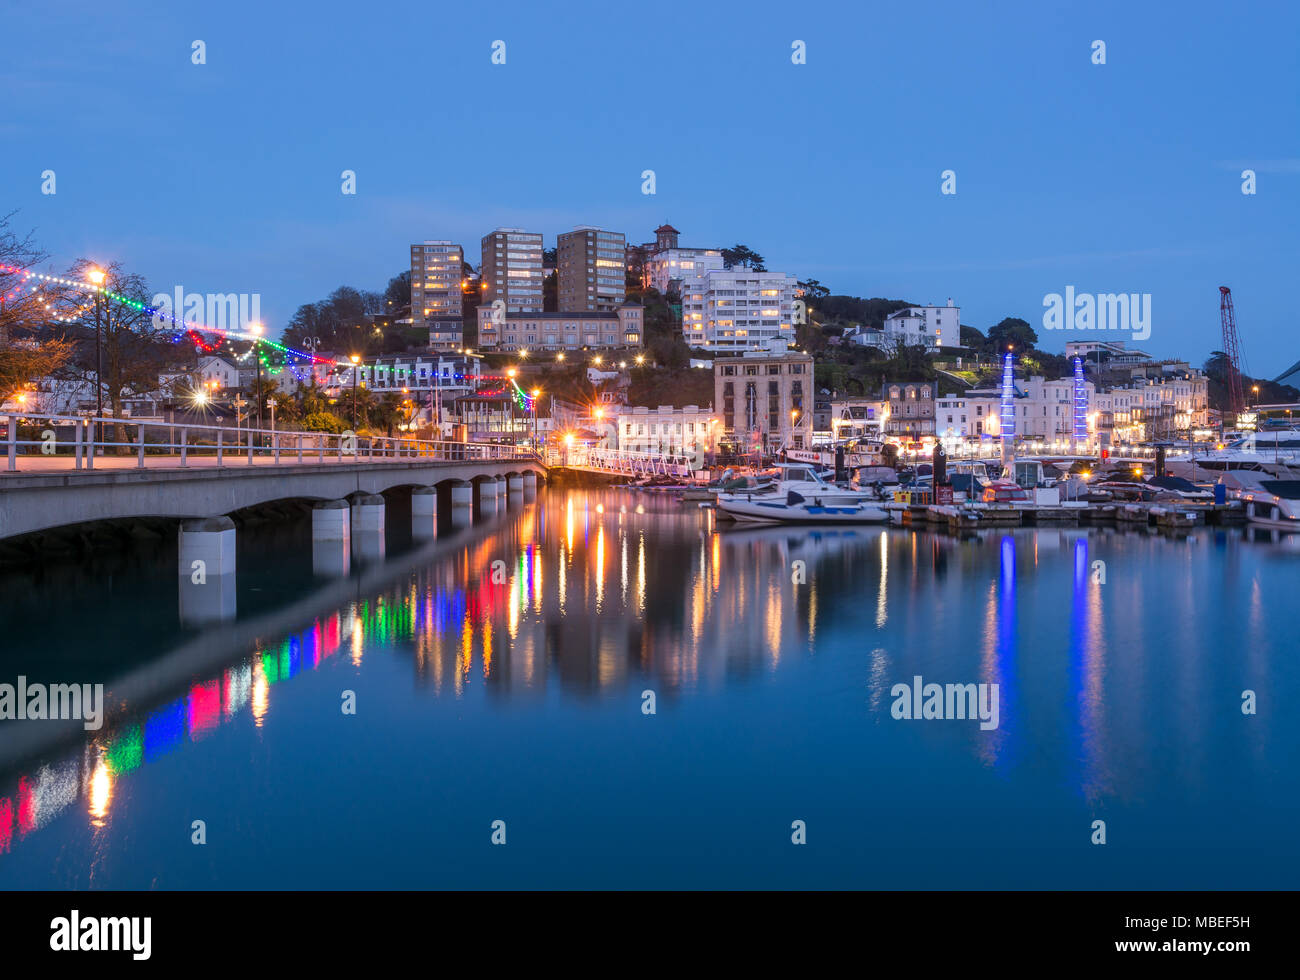 Torquay Harbour At Dusk - Stock Image